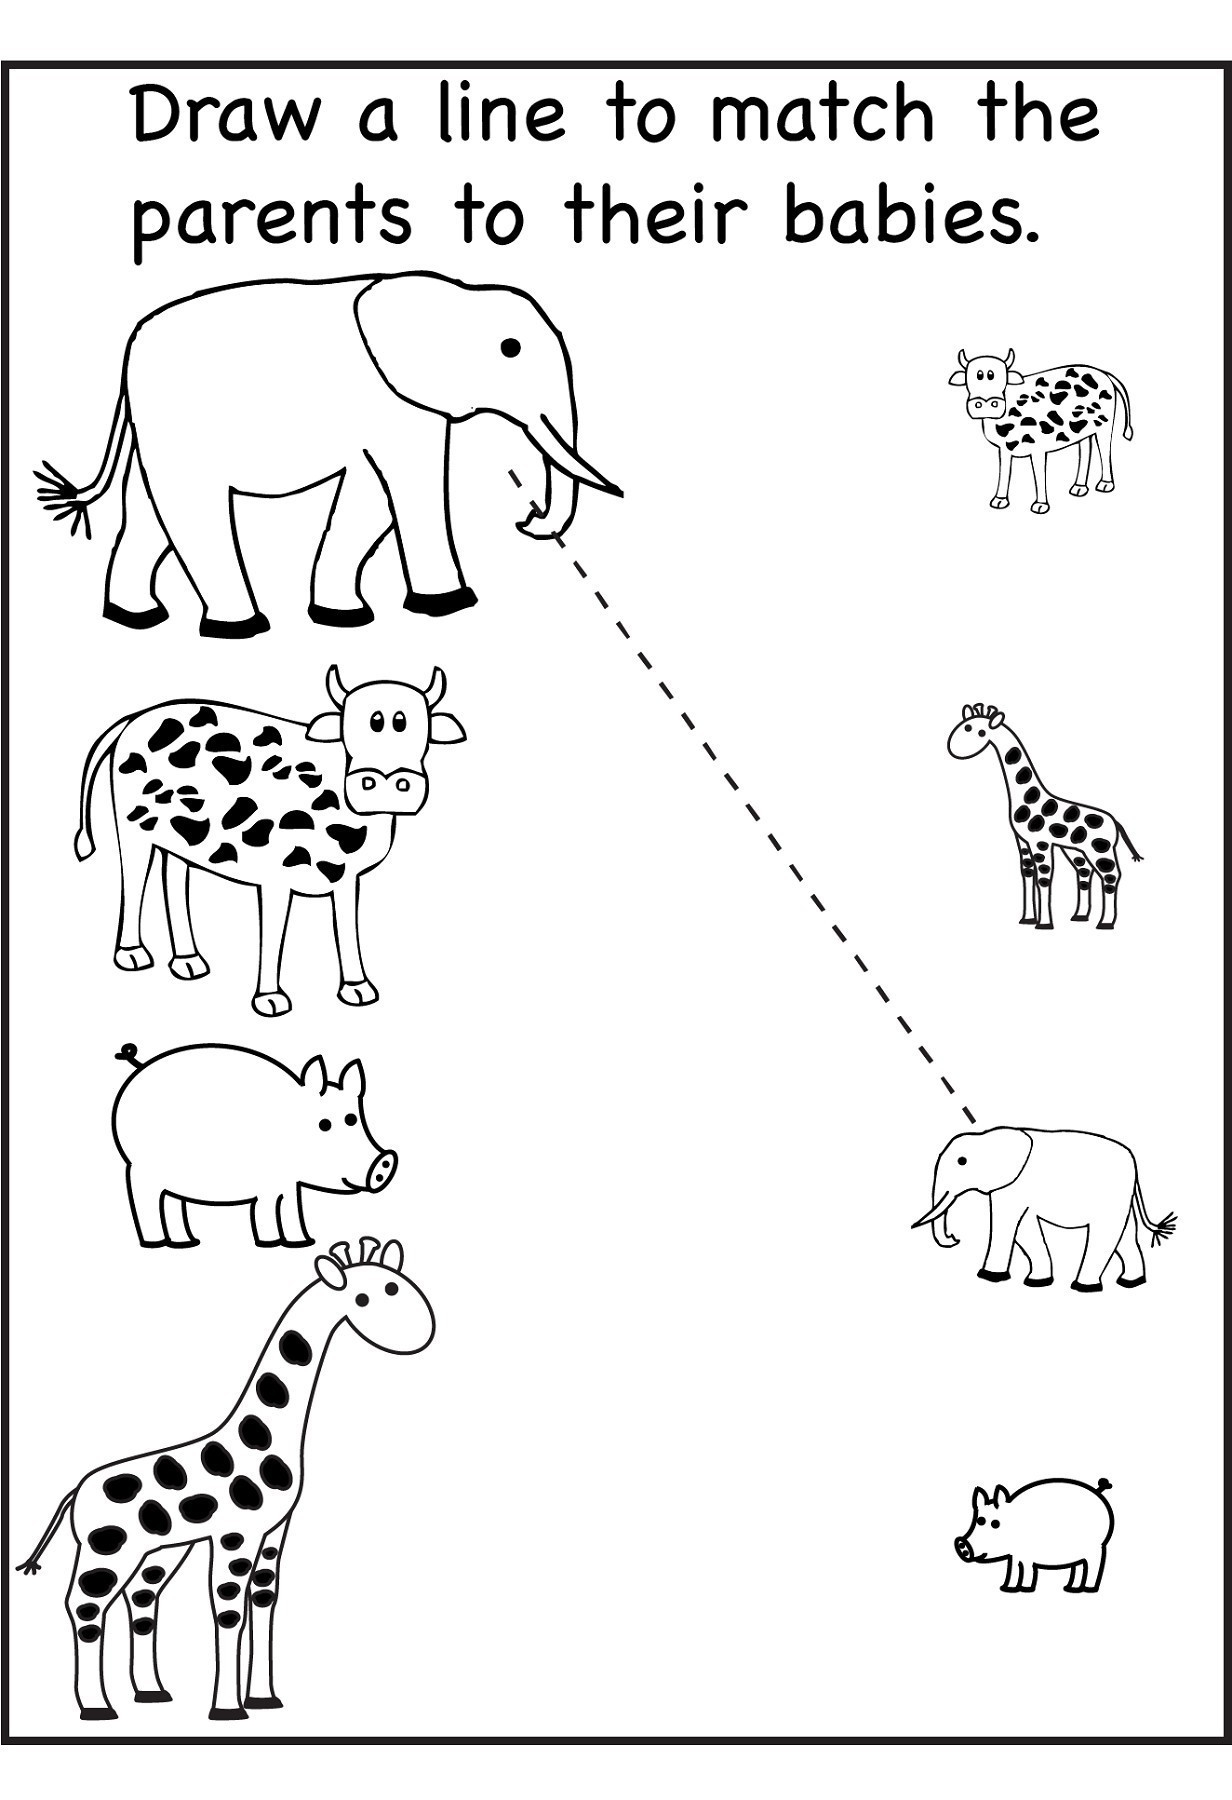 Free Printable Activities For Kids #160 - Free Printable Activities For Kids